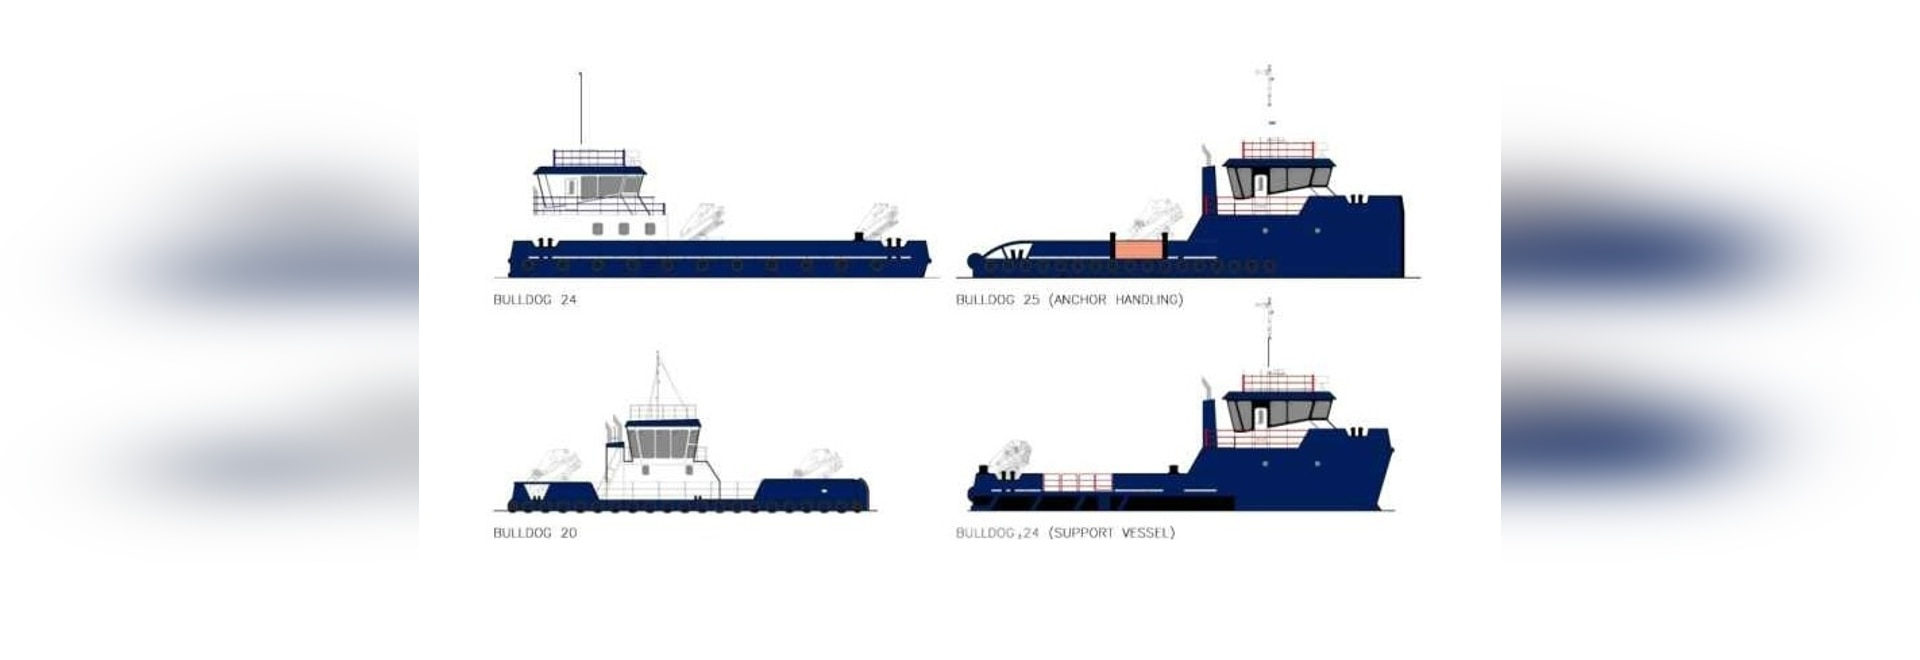 SMS unveiled variants of Bulldog design for towage, anchor handling, offshore support and multipurpose vessels